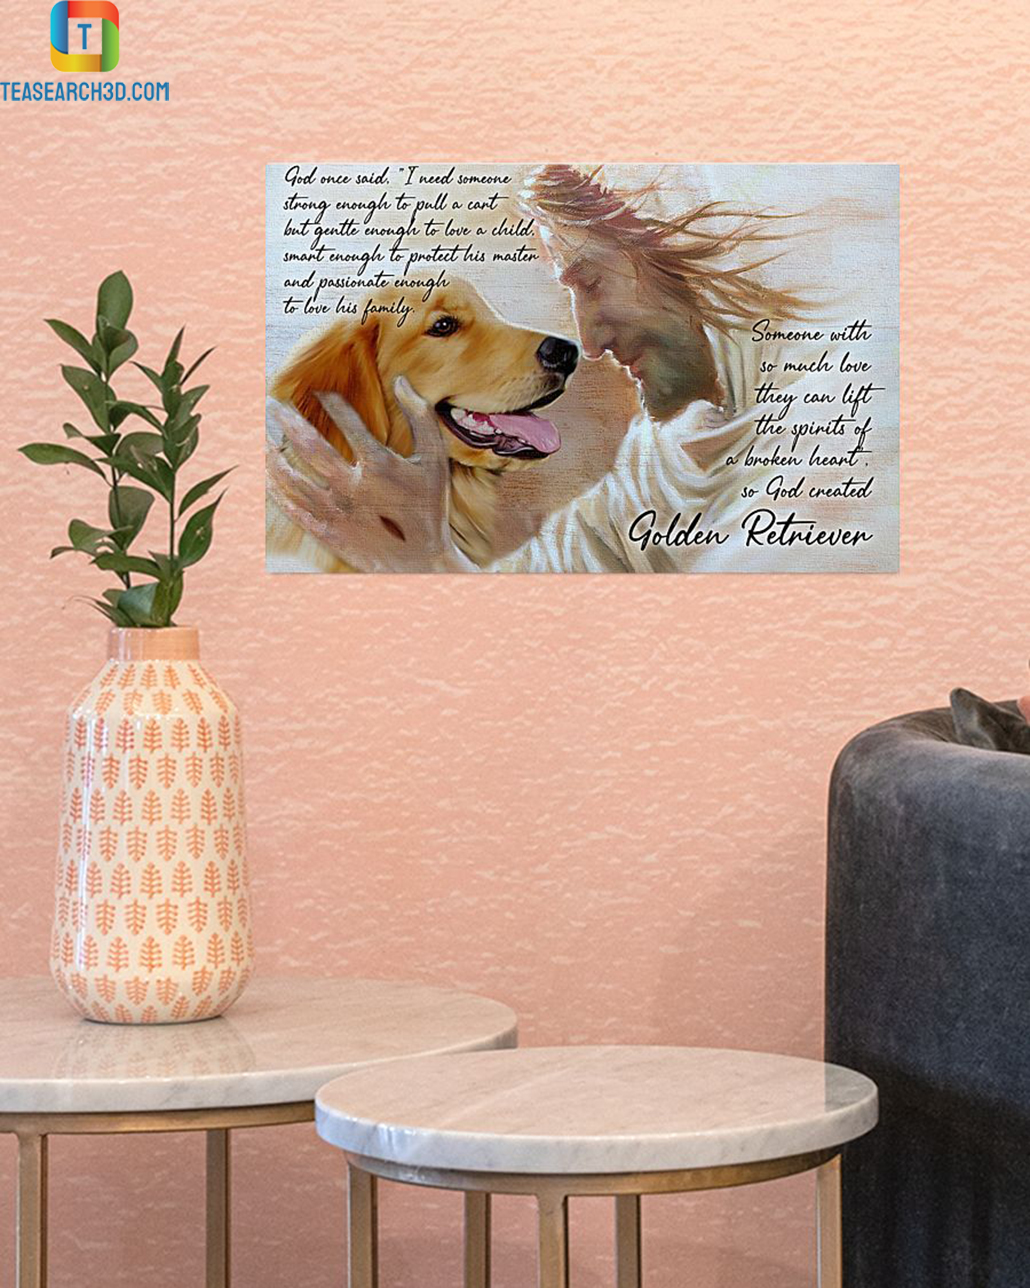 Golden retriever god once said I need someone strong enough poster A1